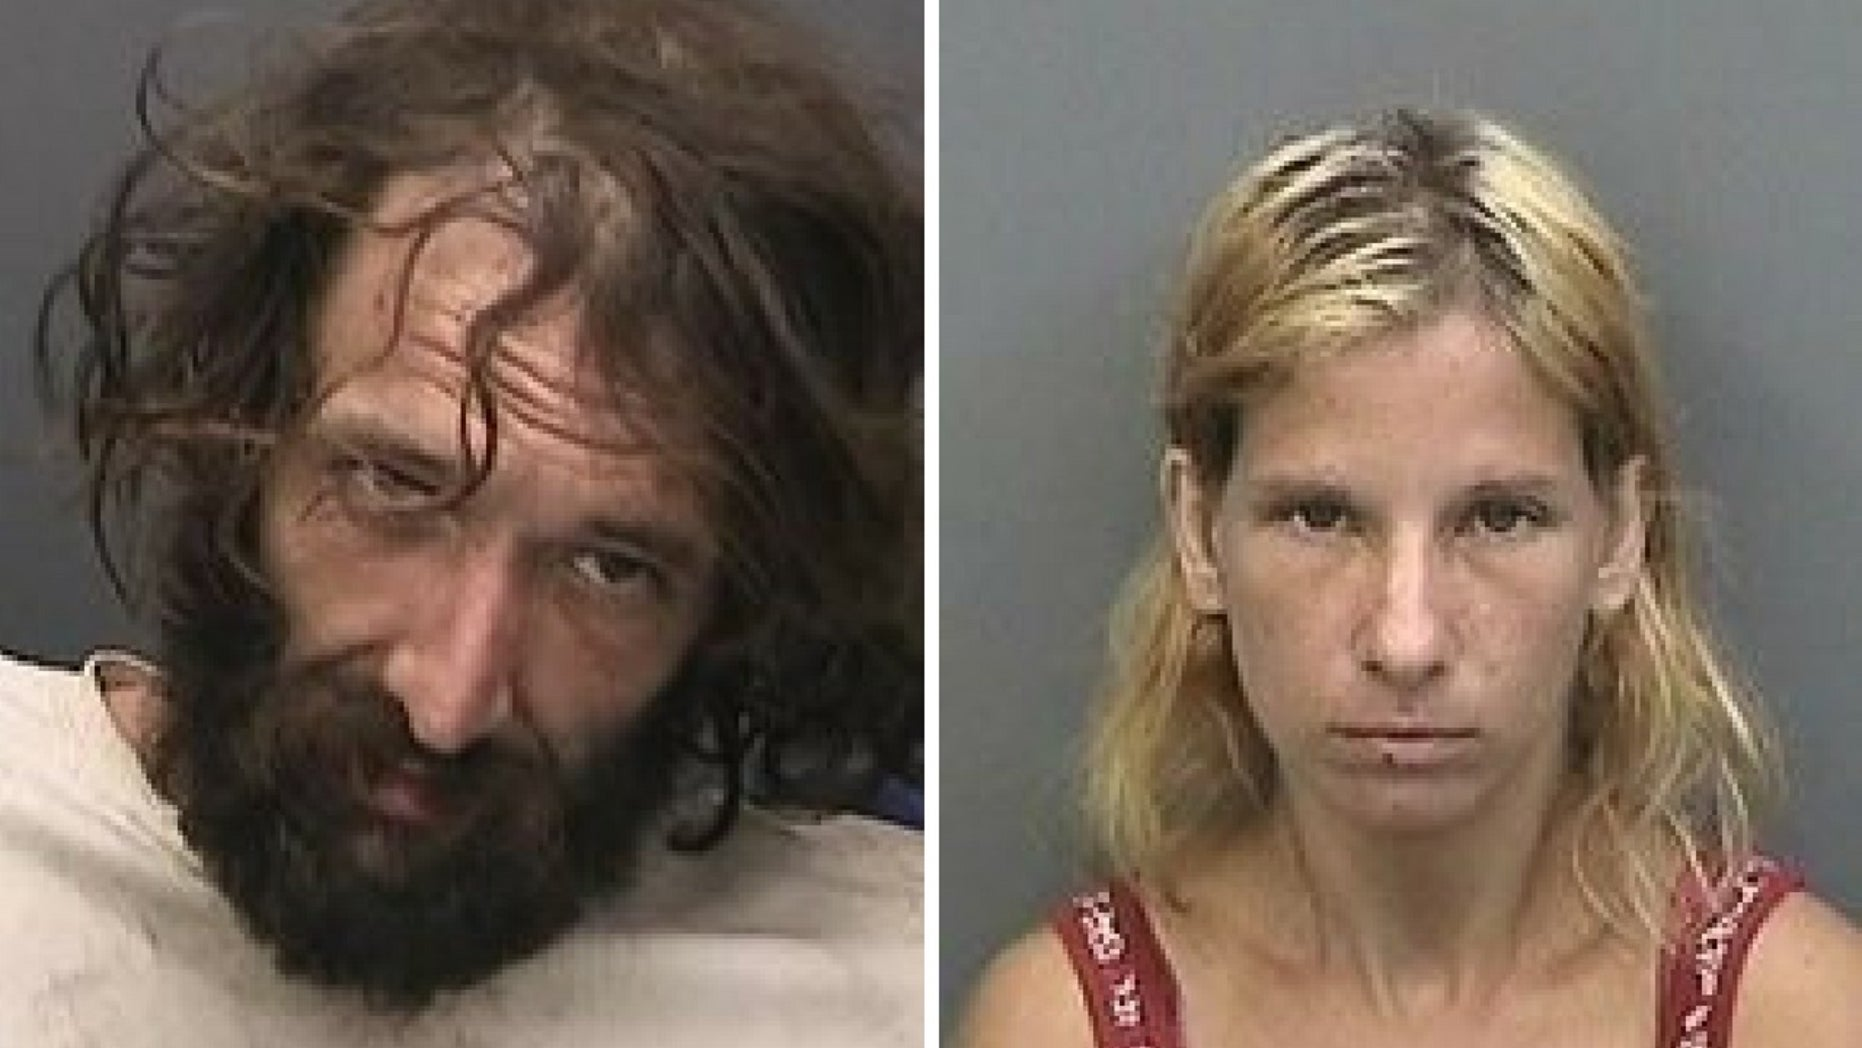 Randy Lee Betts, left, and Ashley DeSouza were arrested in Seffner, Fla., on Monday, July 9, 2018.